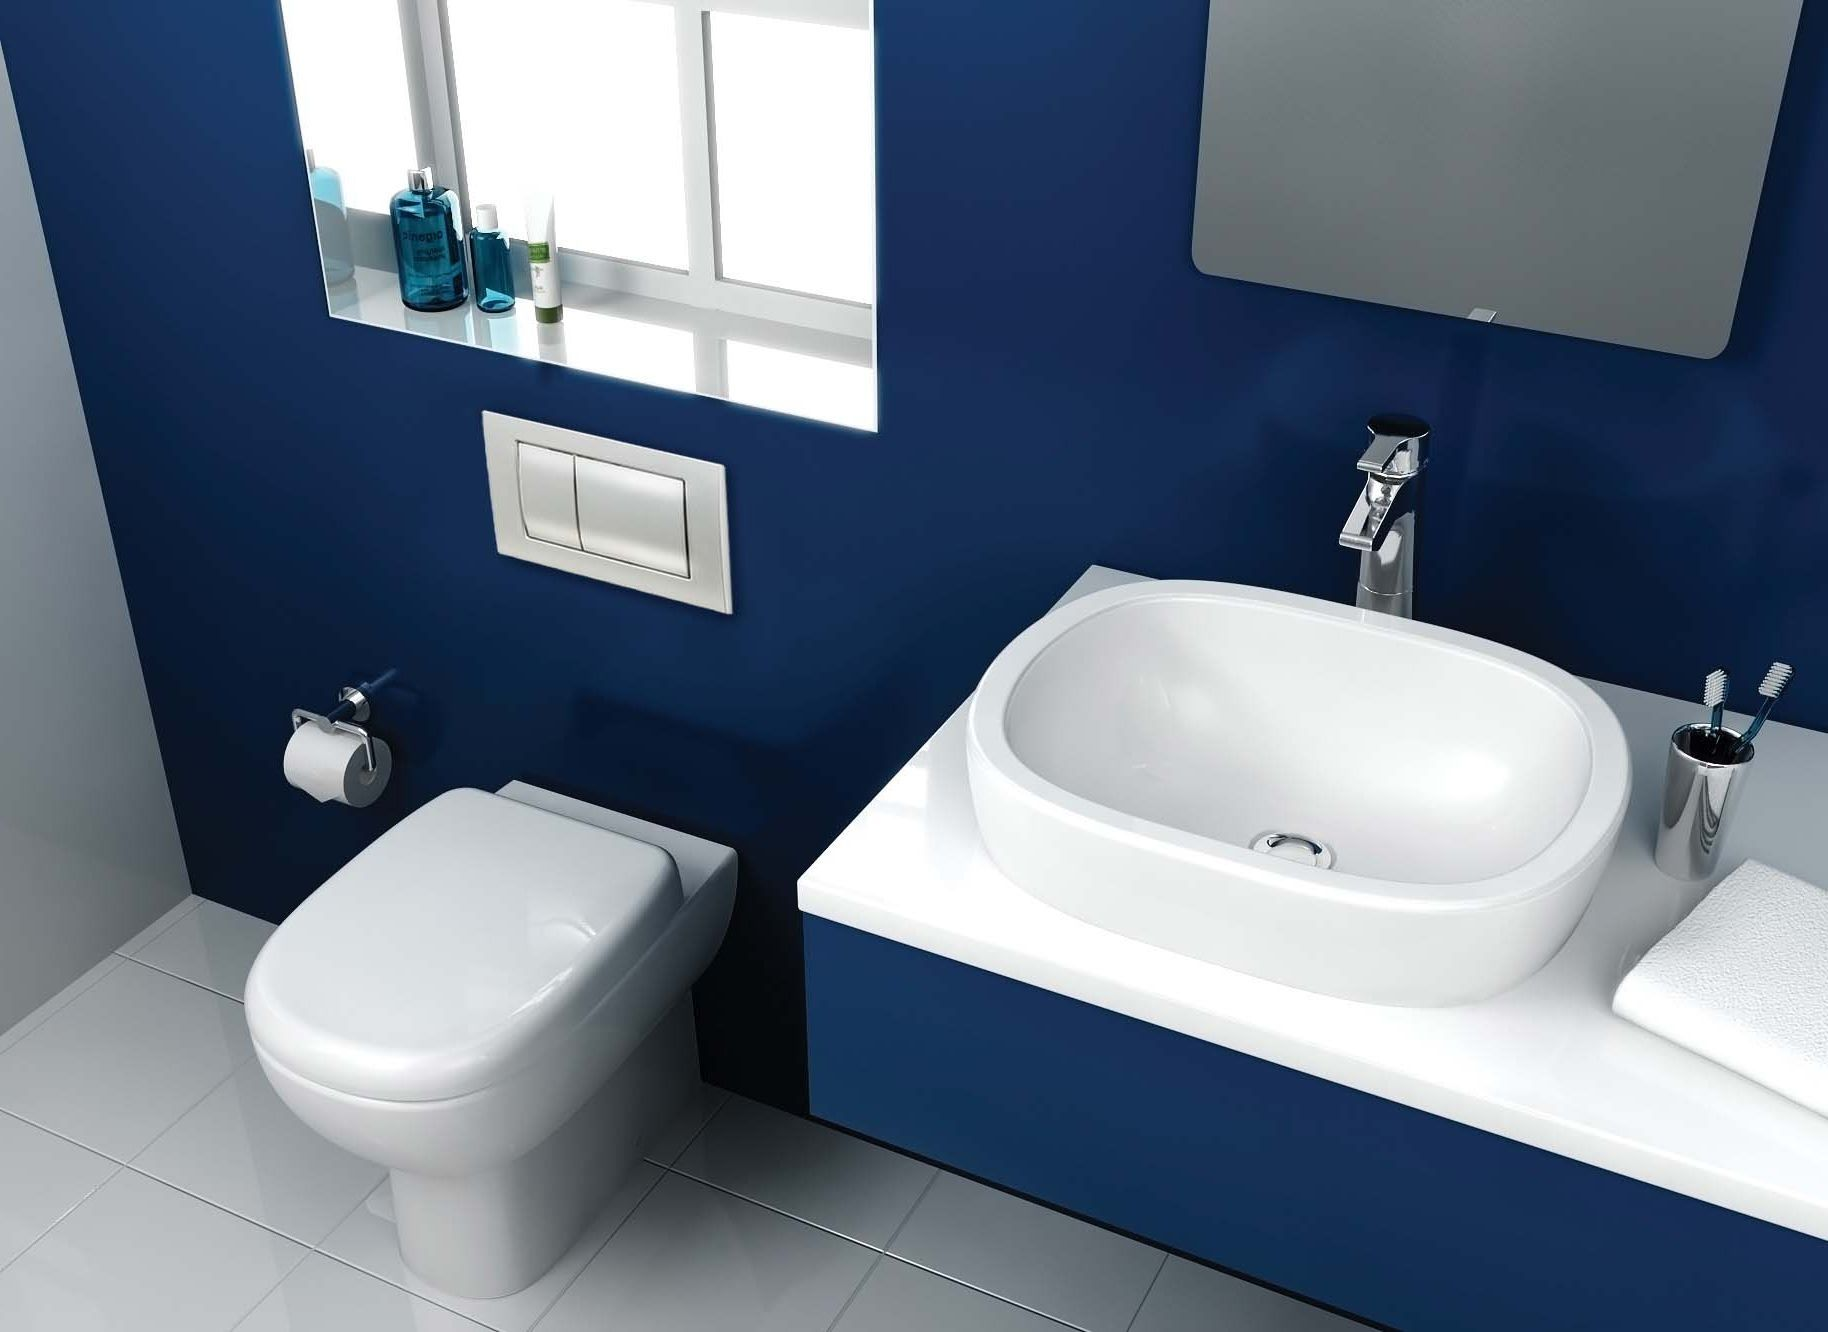 interior paint color ideas blue bathroom paint decorating - Bathroom Decorating Ideas Blue Walls